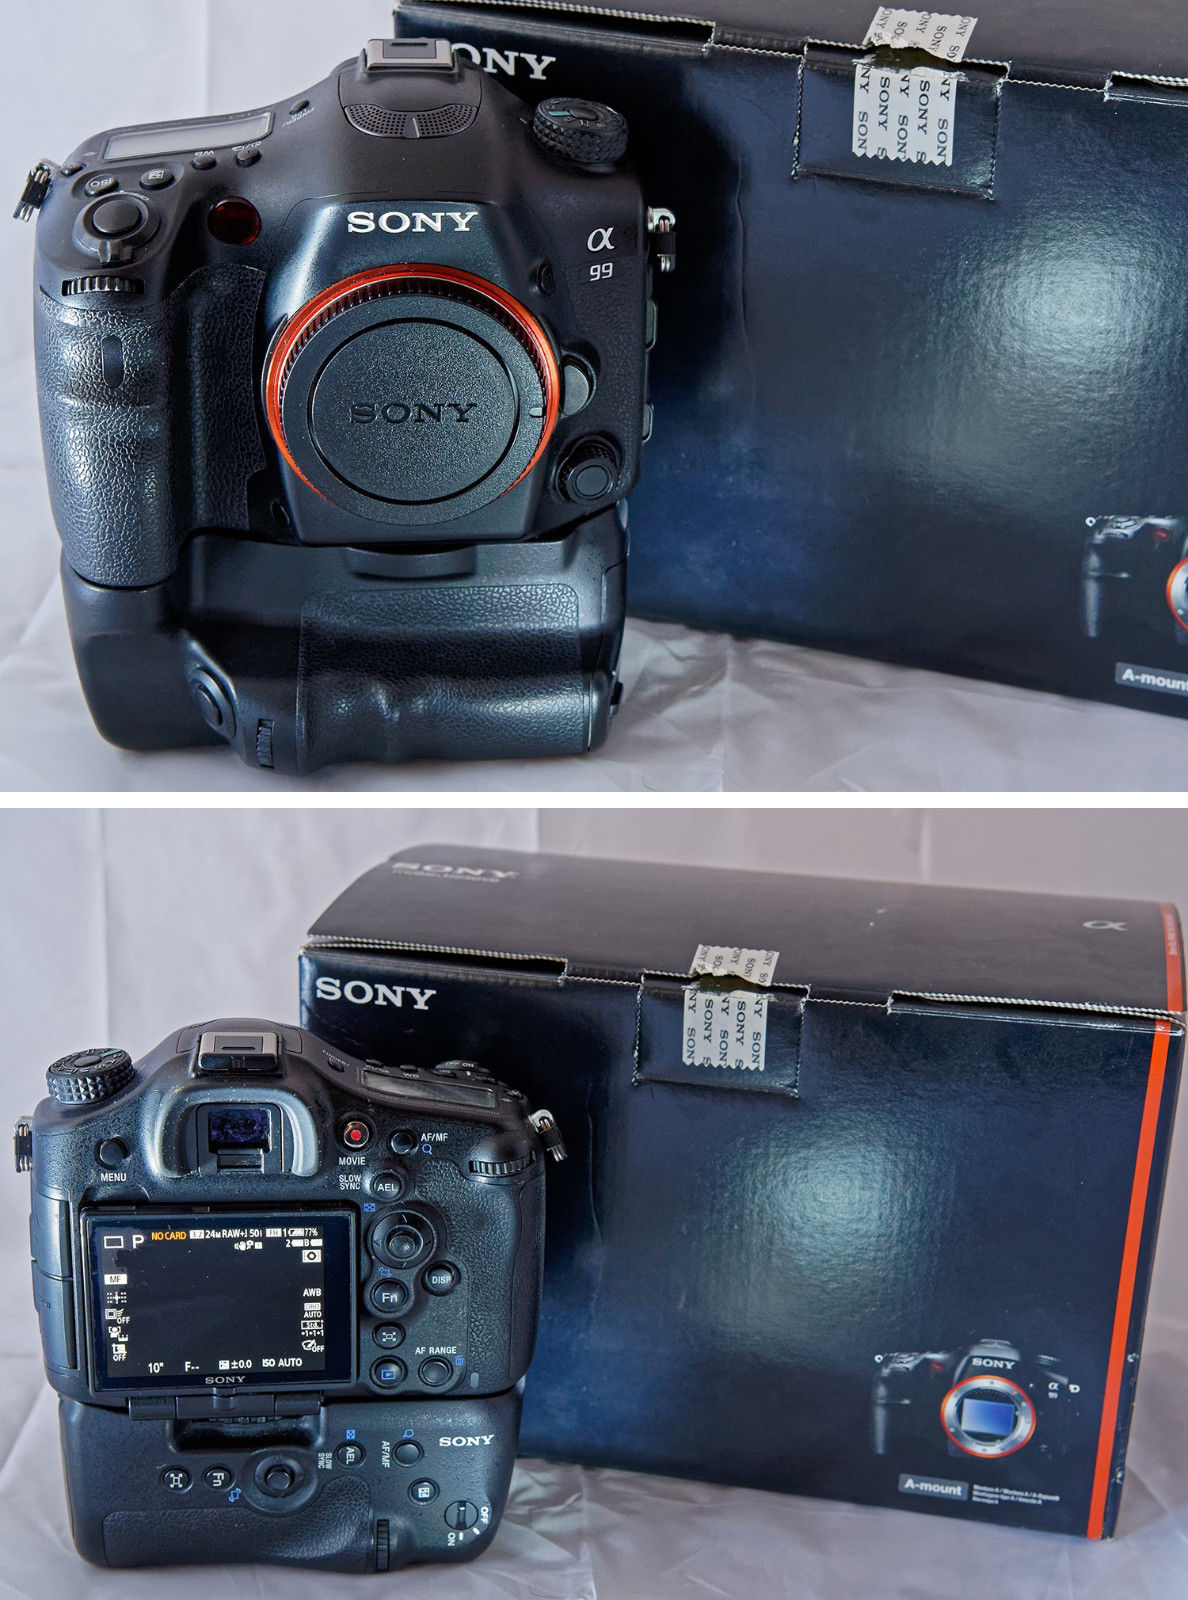 Sony Alpha SLT-A99V 24.3 MP SLR-Digitalkamera mit OVP + Sony Batteriegriff